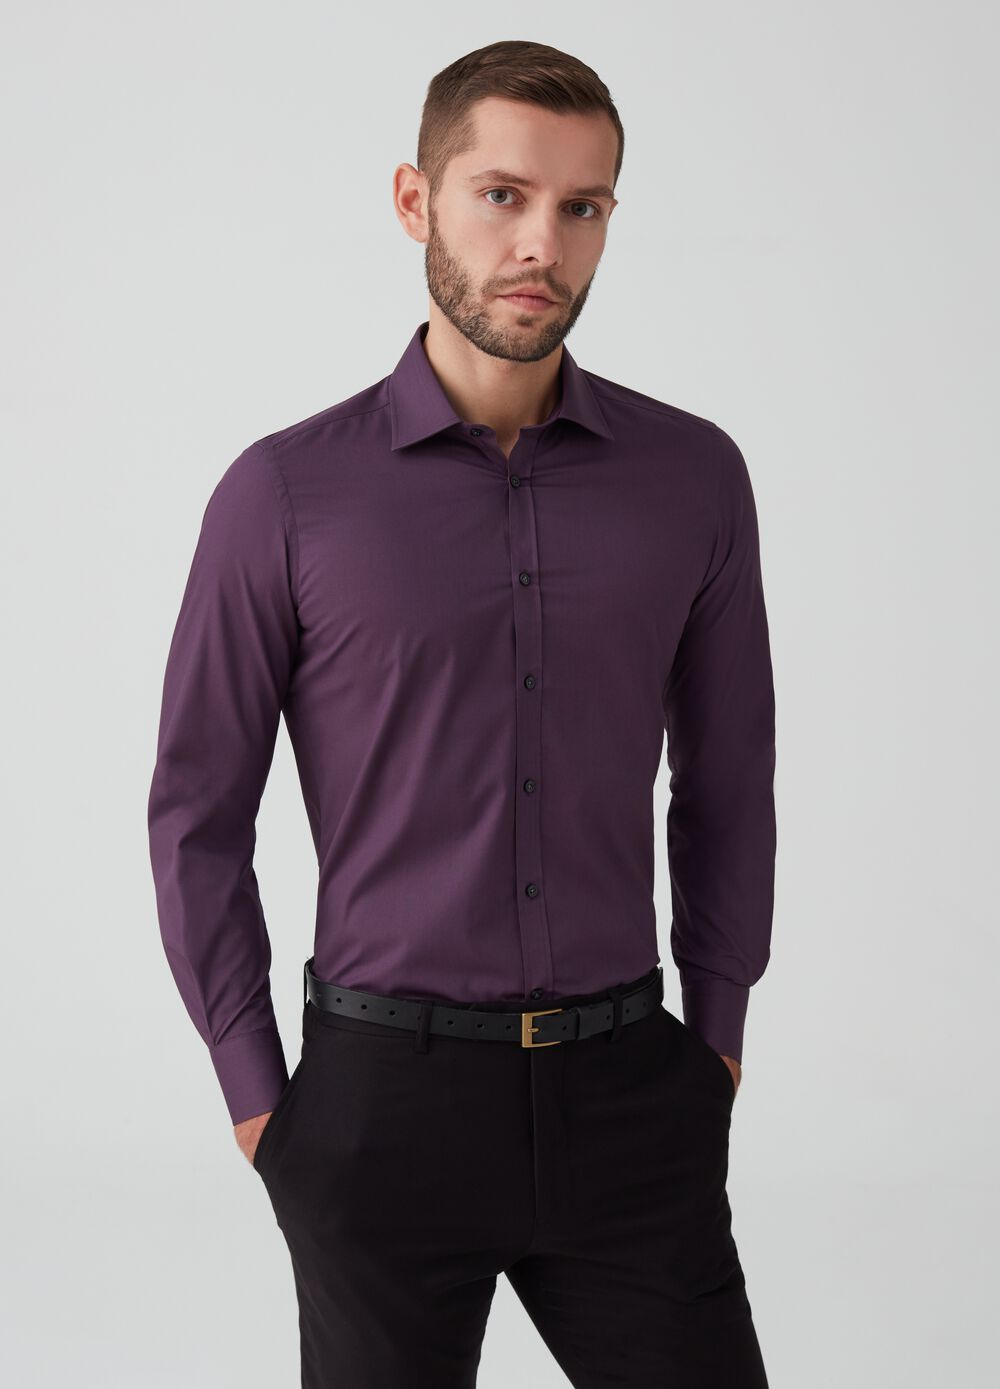 Slim-fit shirt with button-down collar and pocket